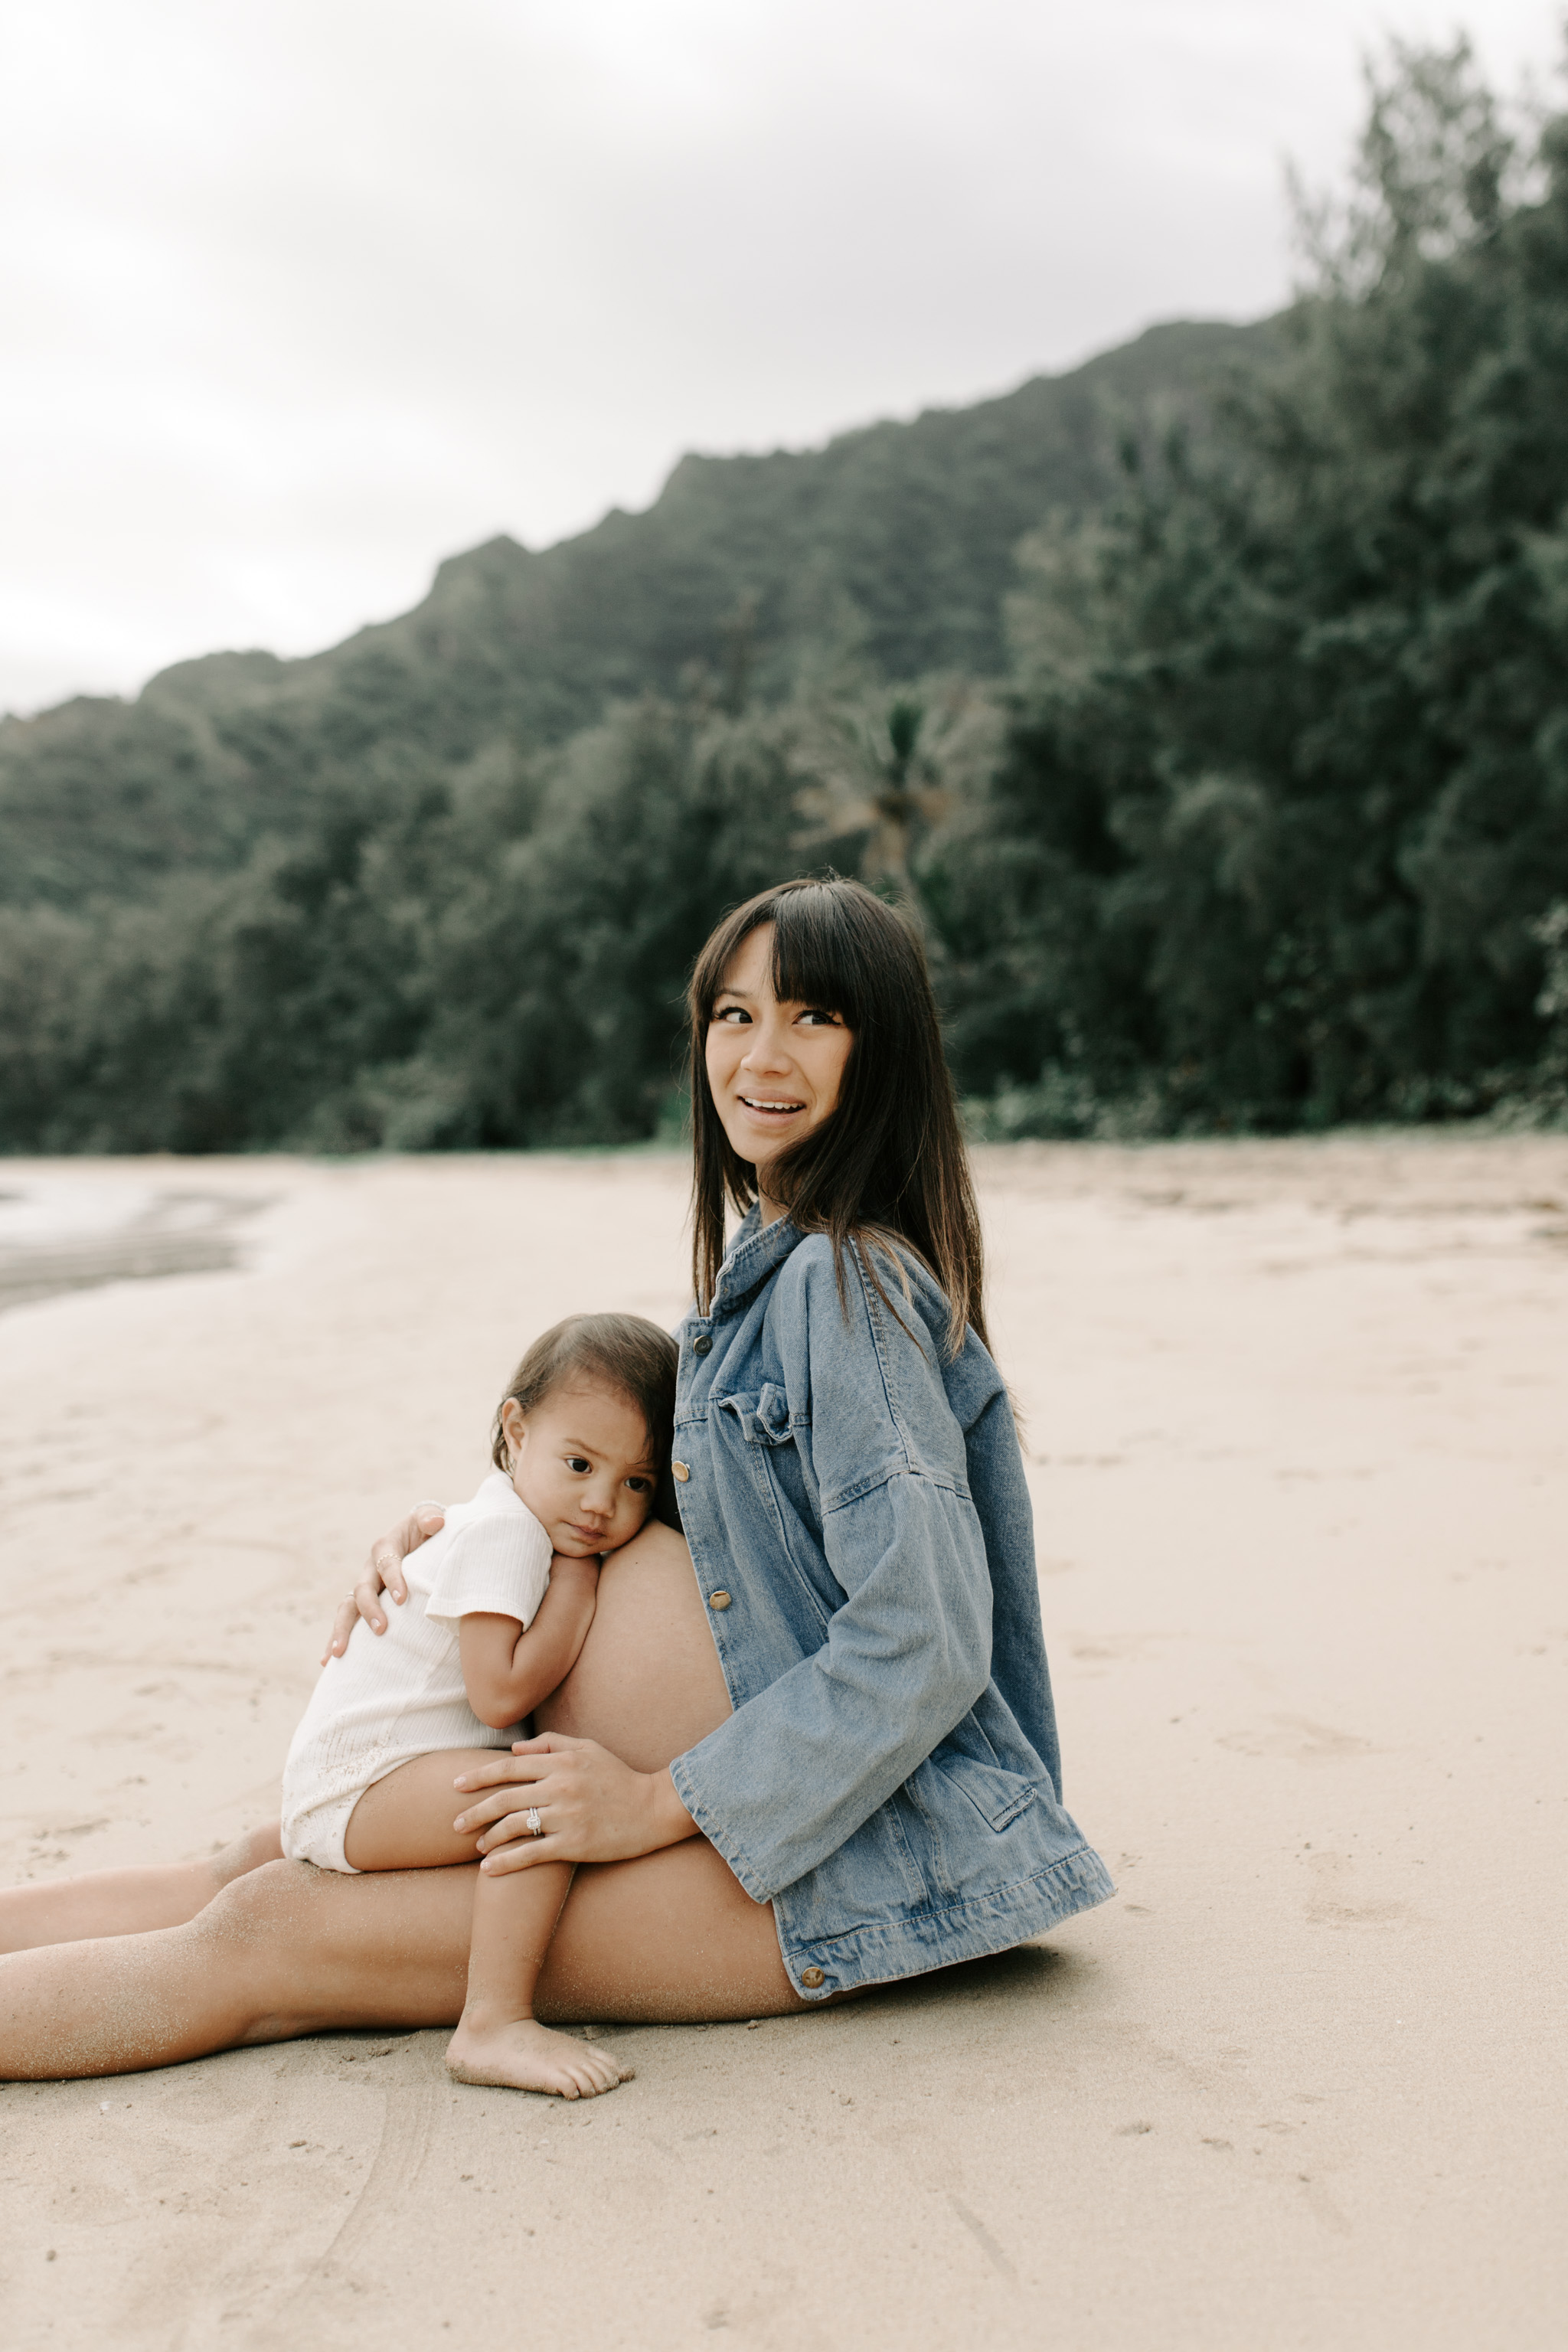 Beautiful maternity photos on a beach at Kahana Bay by Oahu family photographer Desiree Leilani